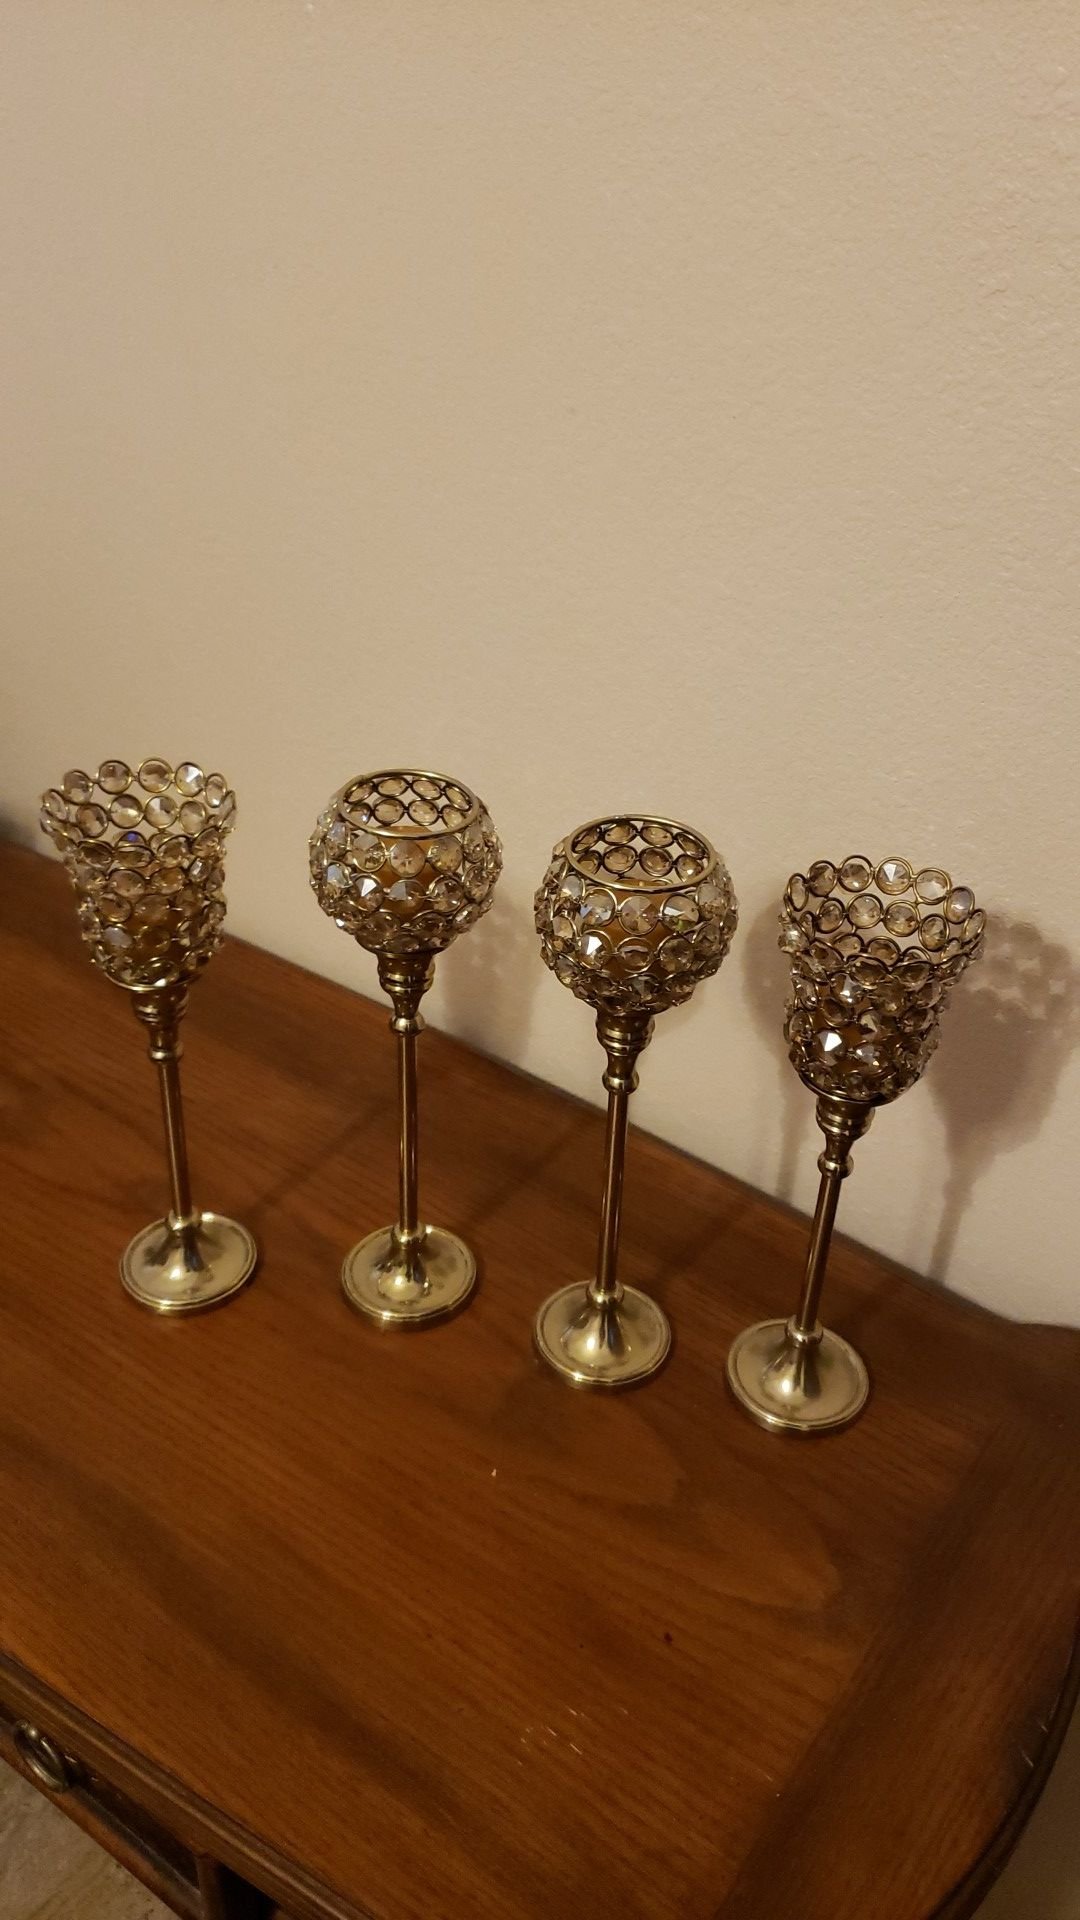 NEW BRASS CANDLE HOLDERS